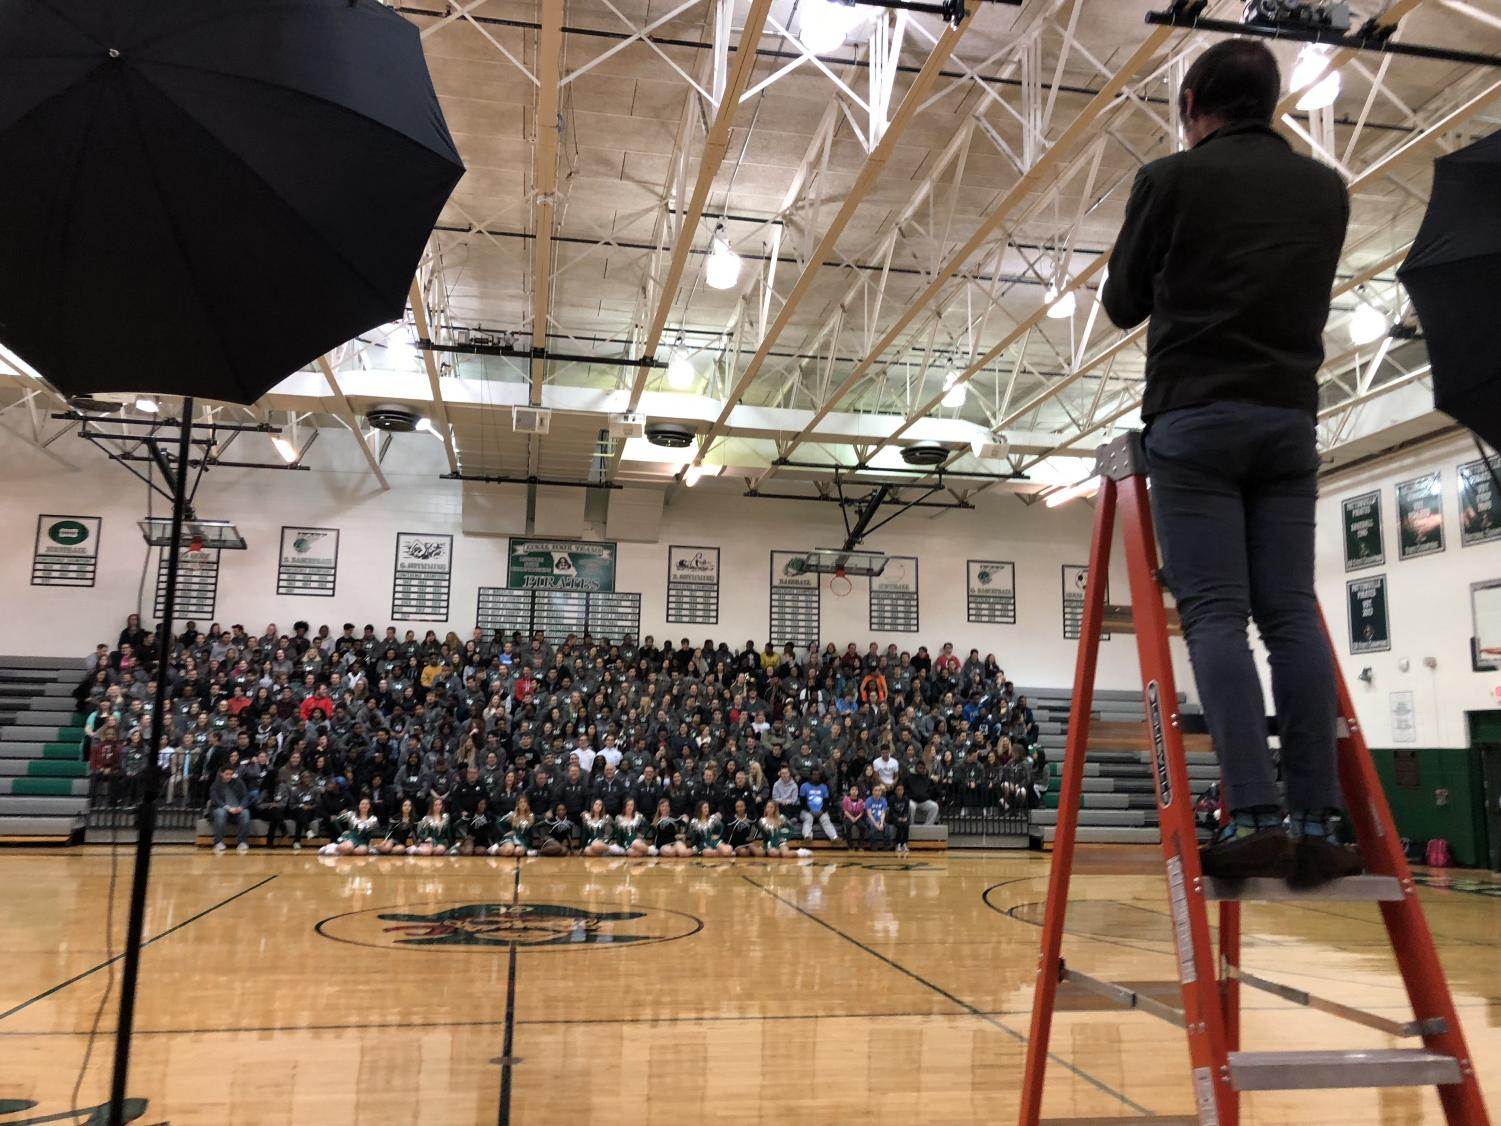 The Class of 2019 went to the main gym for the Senior Panoramic photo on Nov. 29.